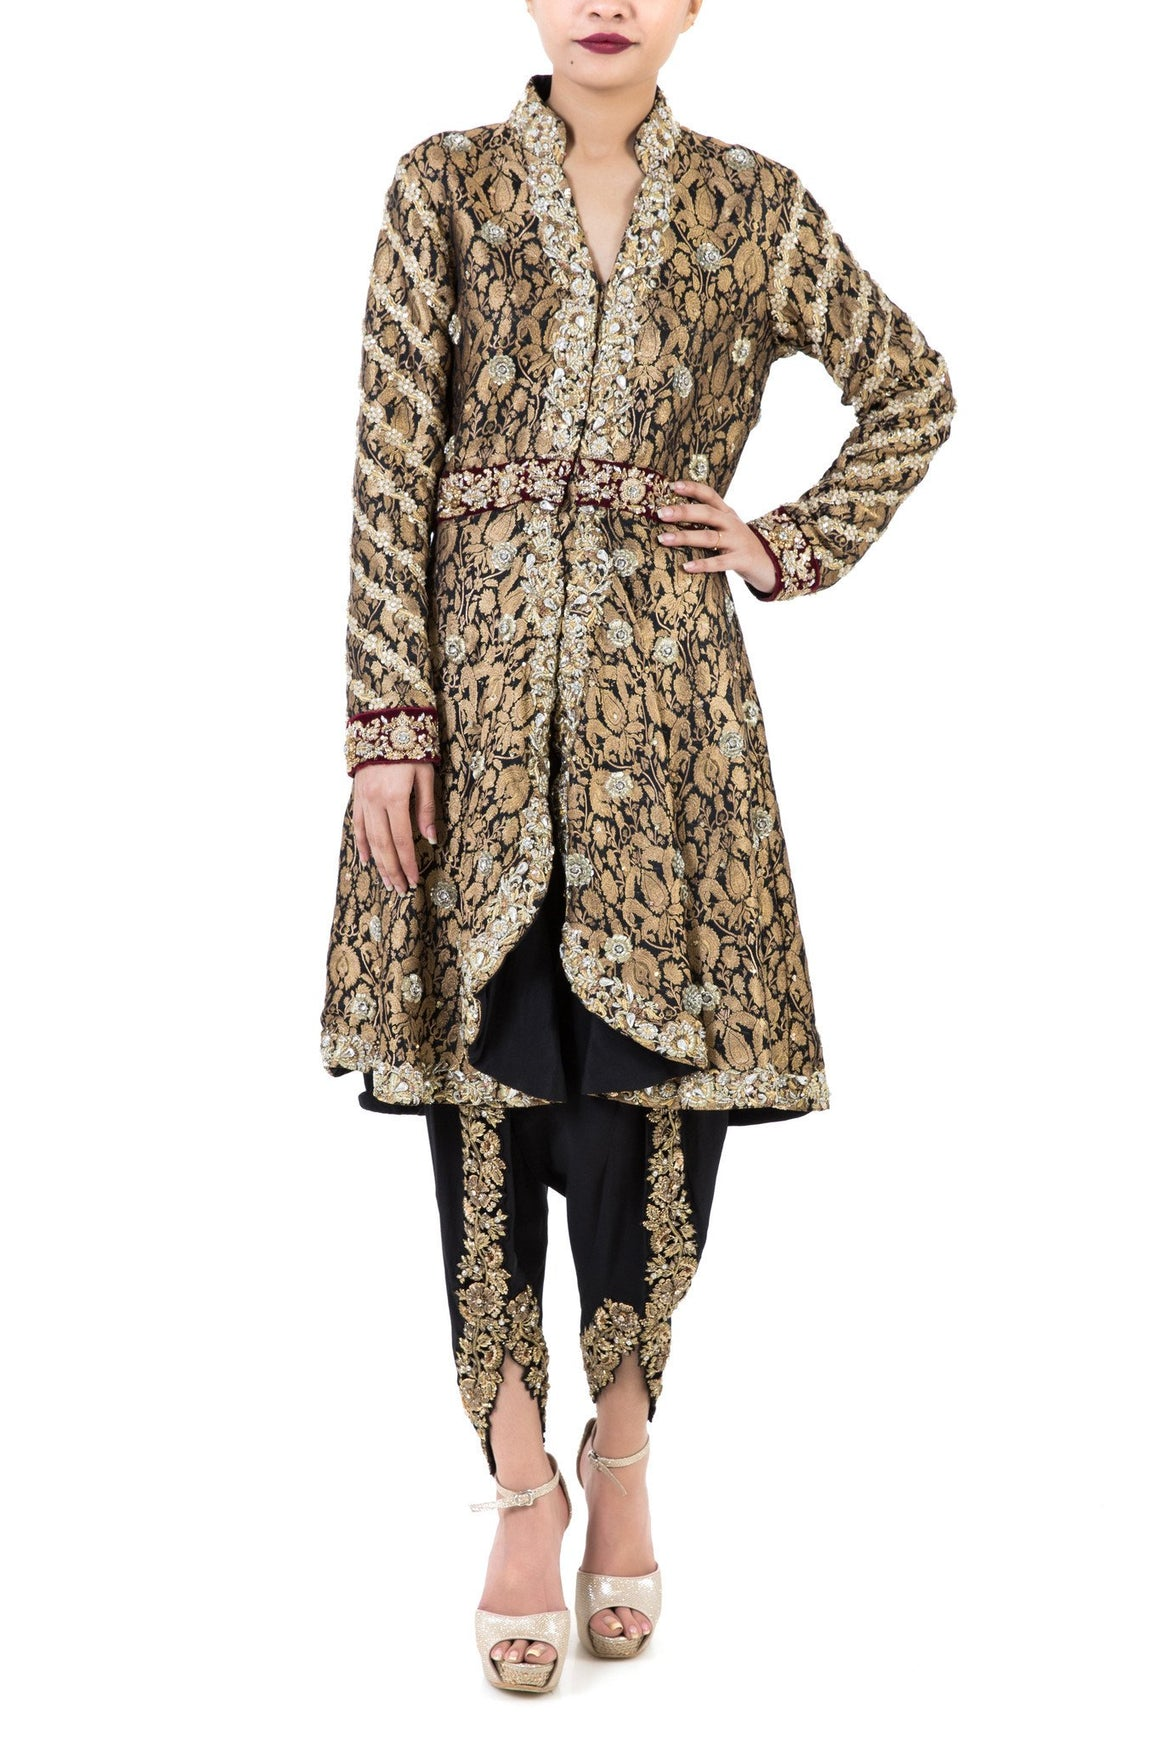 Maheen Karim - Black & Gold Jamawar Zardozi Peplum Coat with Pants